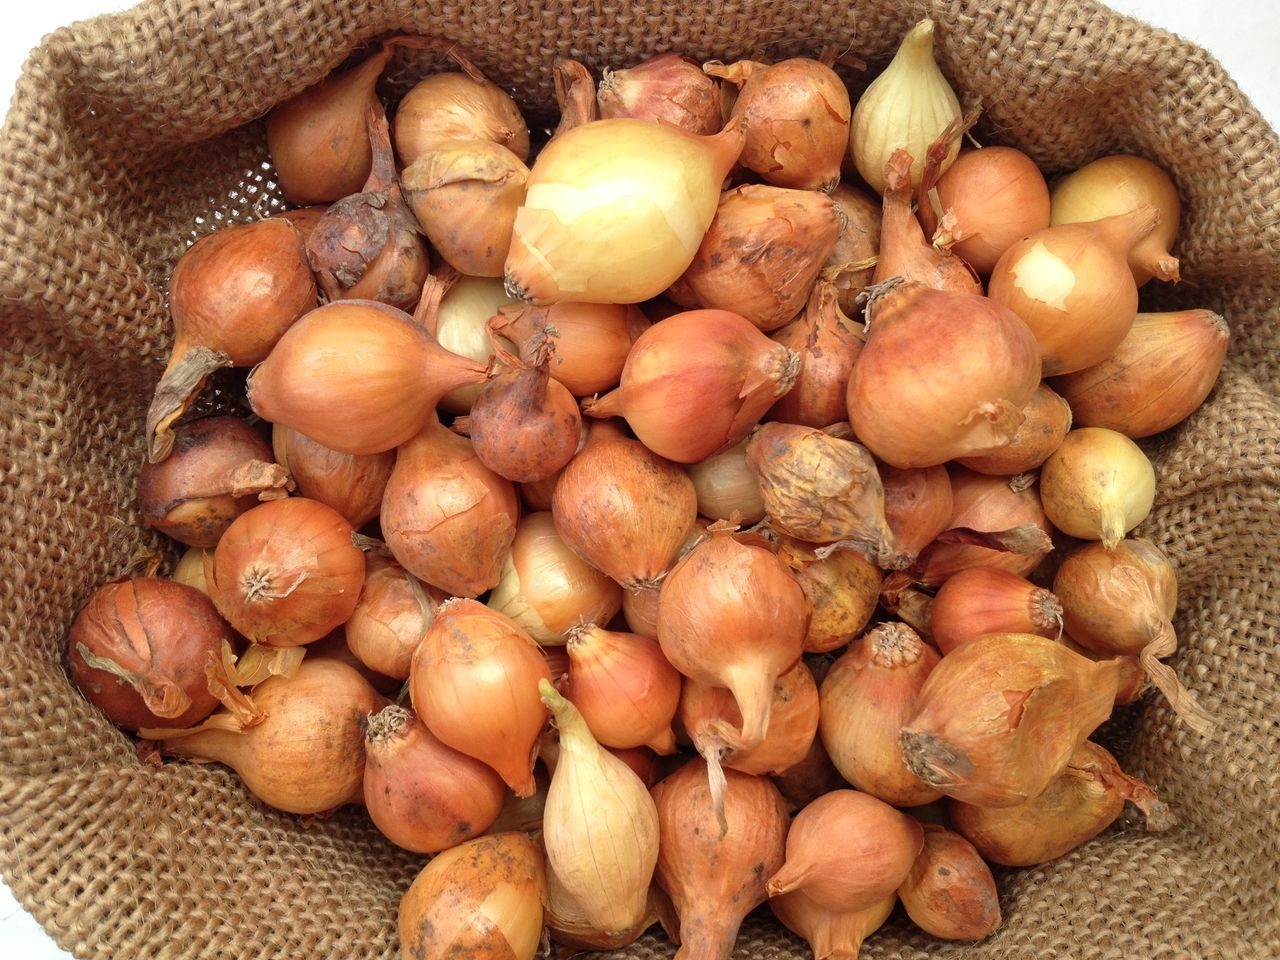 High Angle View Of Onions In Sack